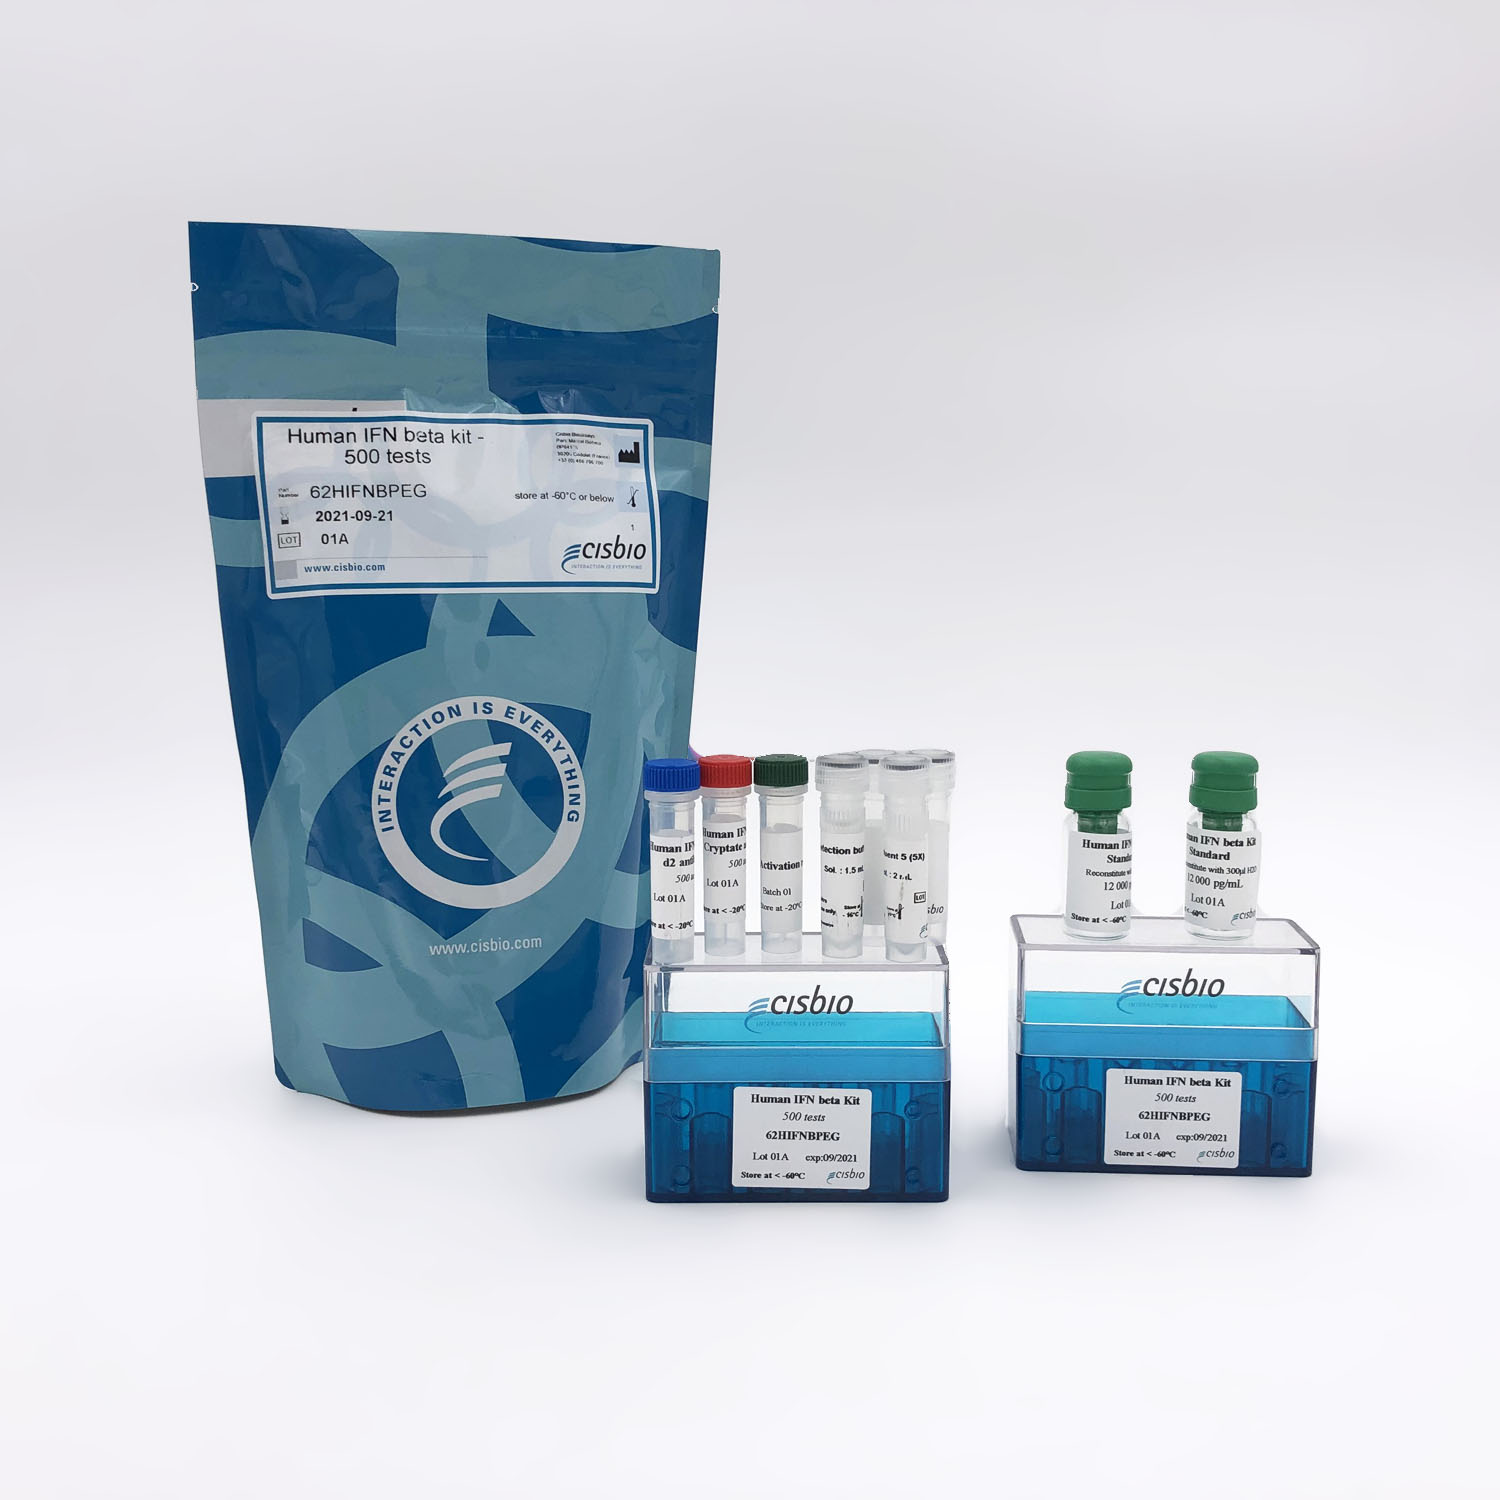 Photography of Human IFN beta Kit